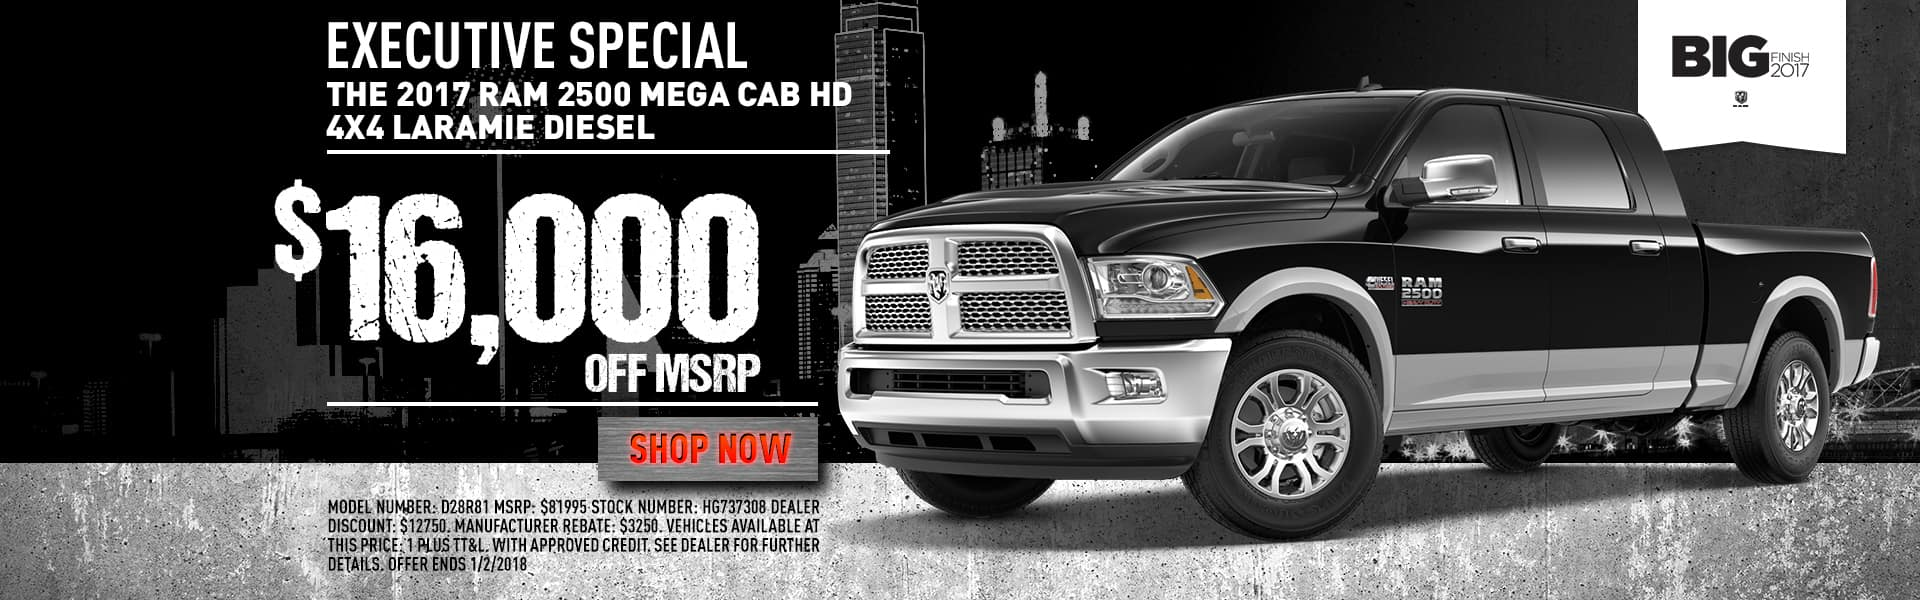 ram dealers near me 2018 2019 car release specs price. Cars Review. Best American Auto & Cars Review